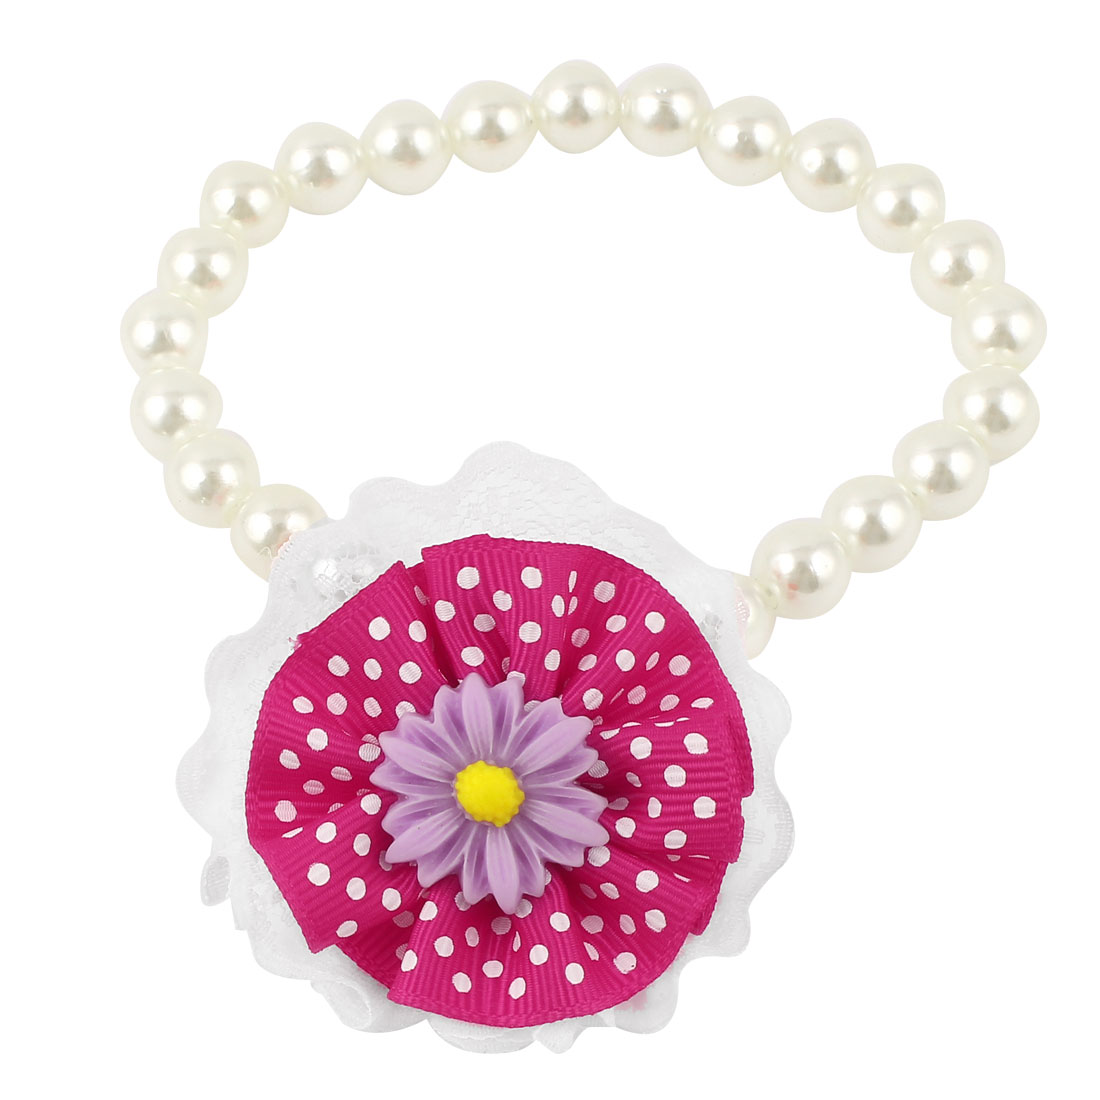 Lace Fuchsia Flower Accent Pet Dog Plastic Beads Pearls Collar Necklace White M